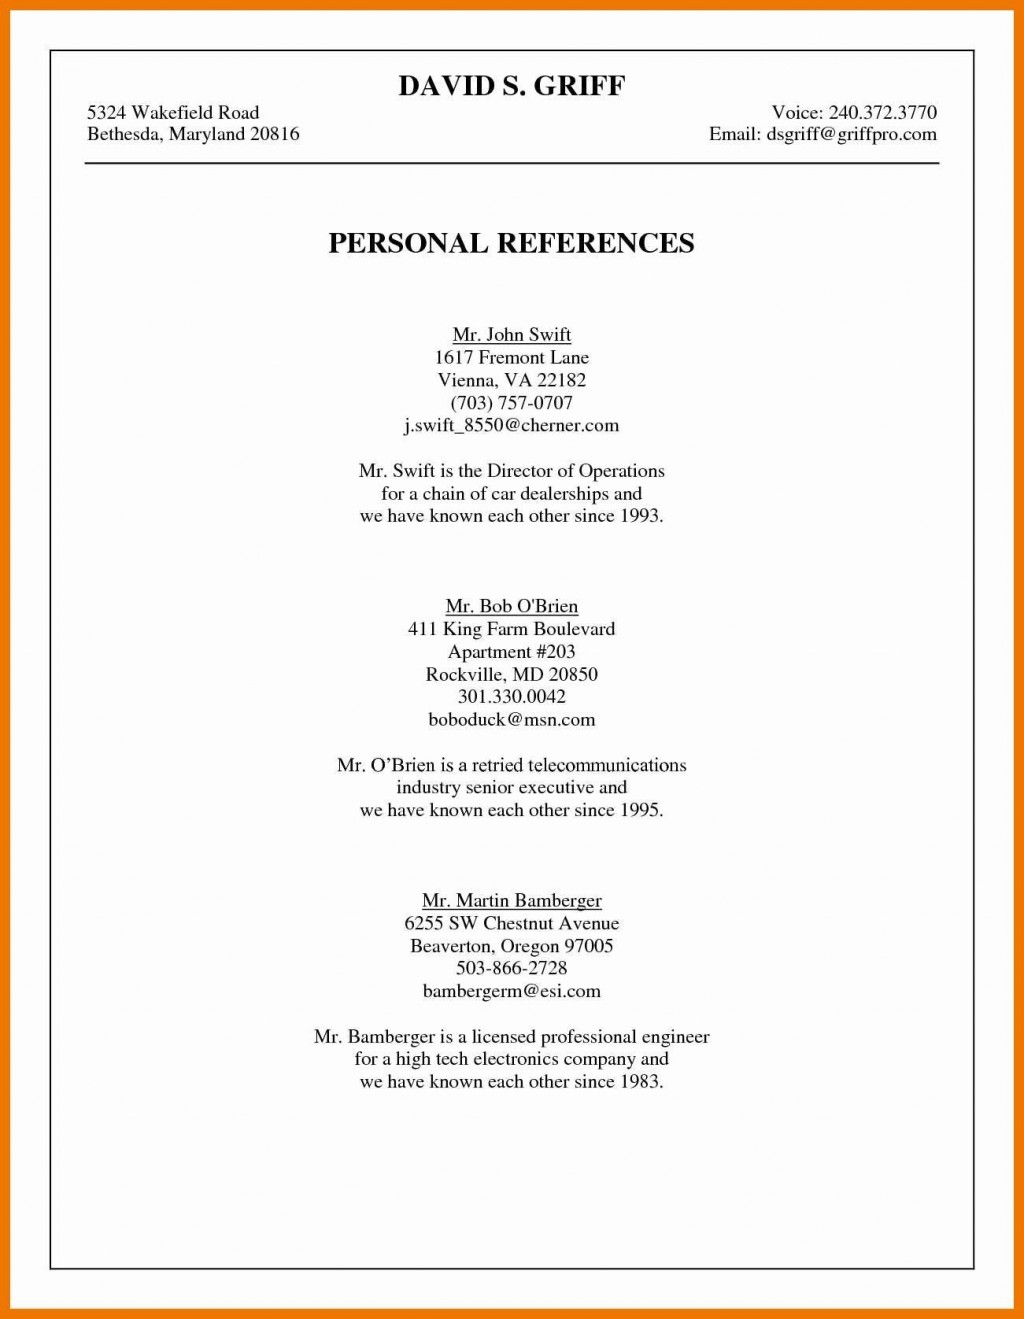 003 Phenomenal List Personal Reference Sample High Def Large